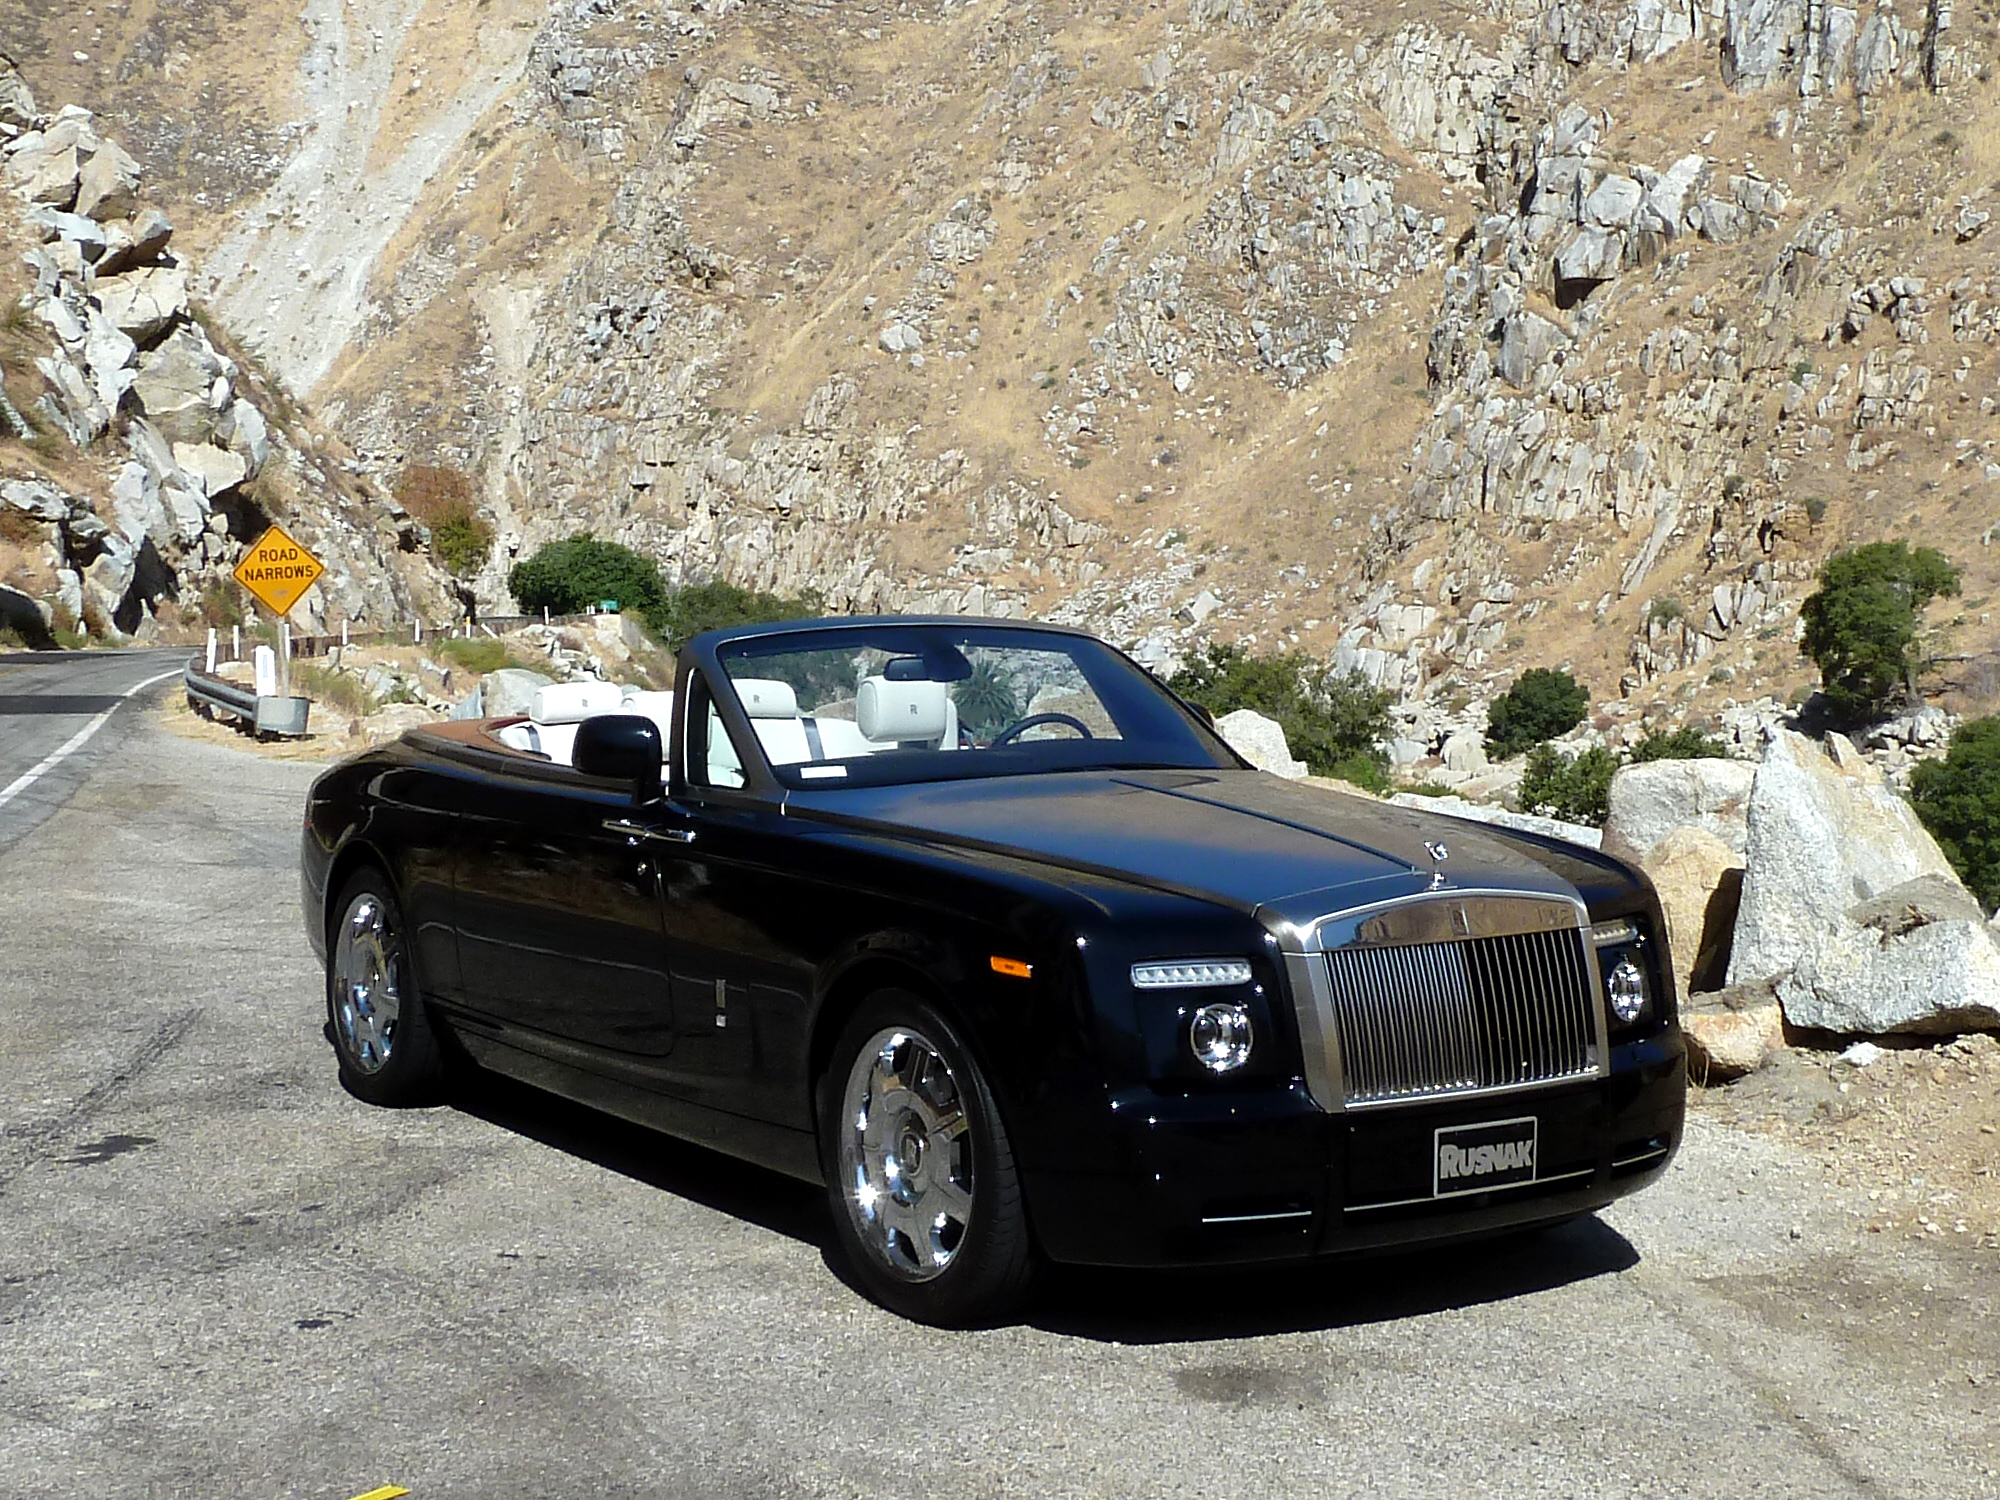 2014 Rolls royce Phantom Drophead Coupe #12